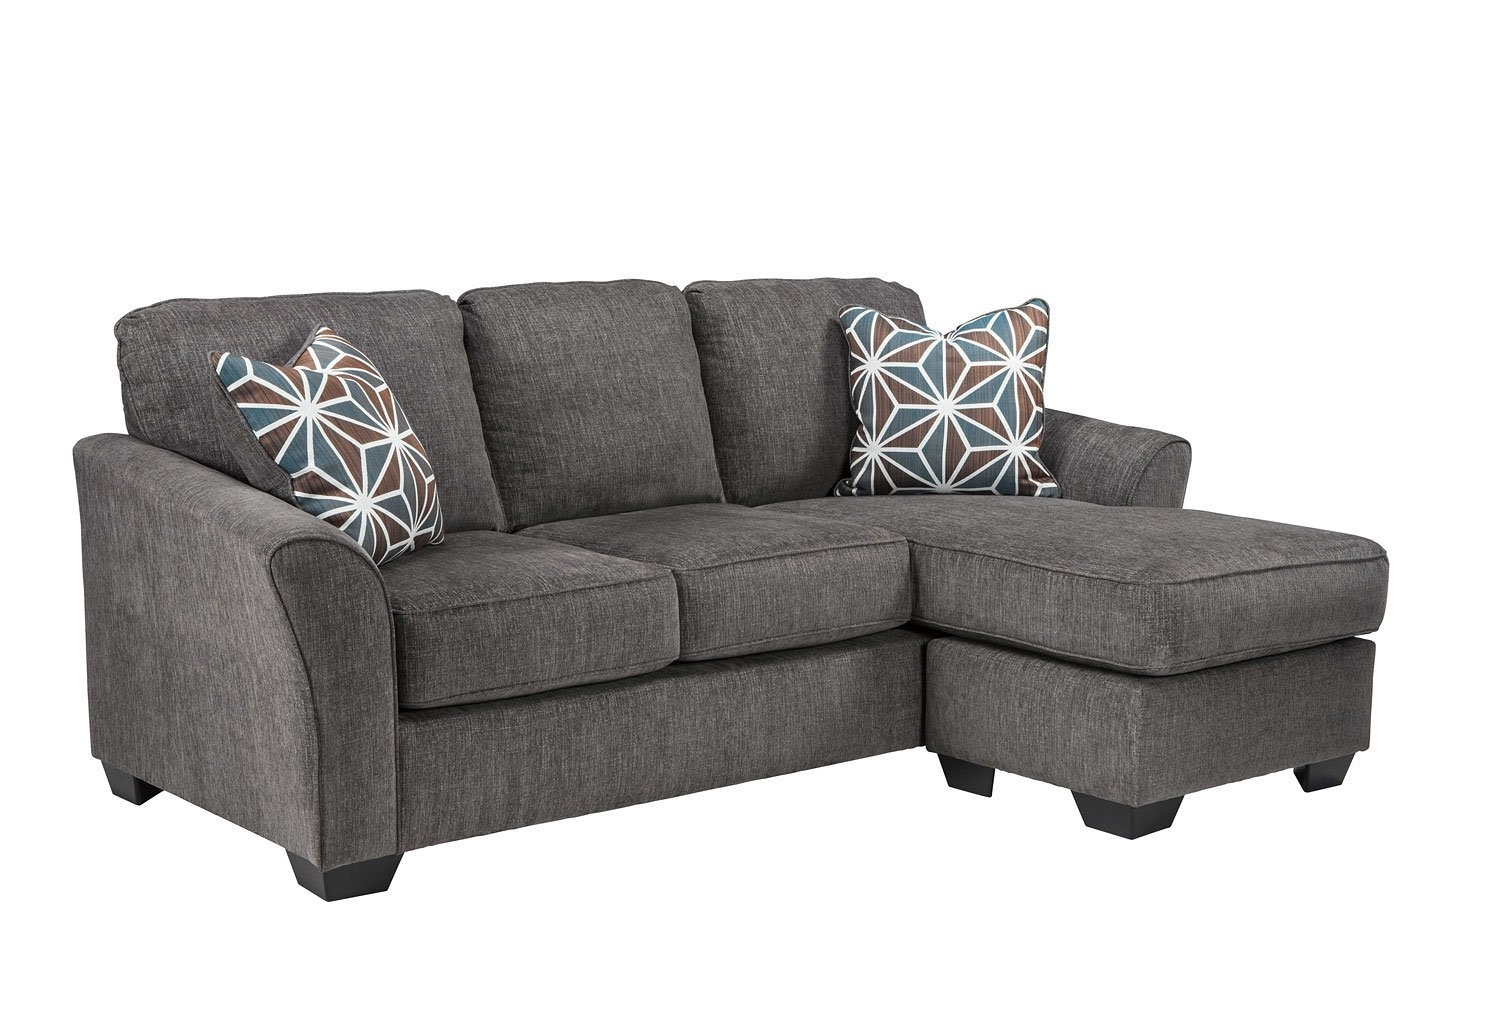 Brise Slate Sofa Chaise - Living Room Furniture - Living within Lucy Grey 2 Piece Sleeper Sectionals With Laf Chaise (Image 9 of 30)